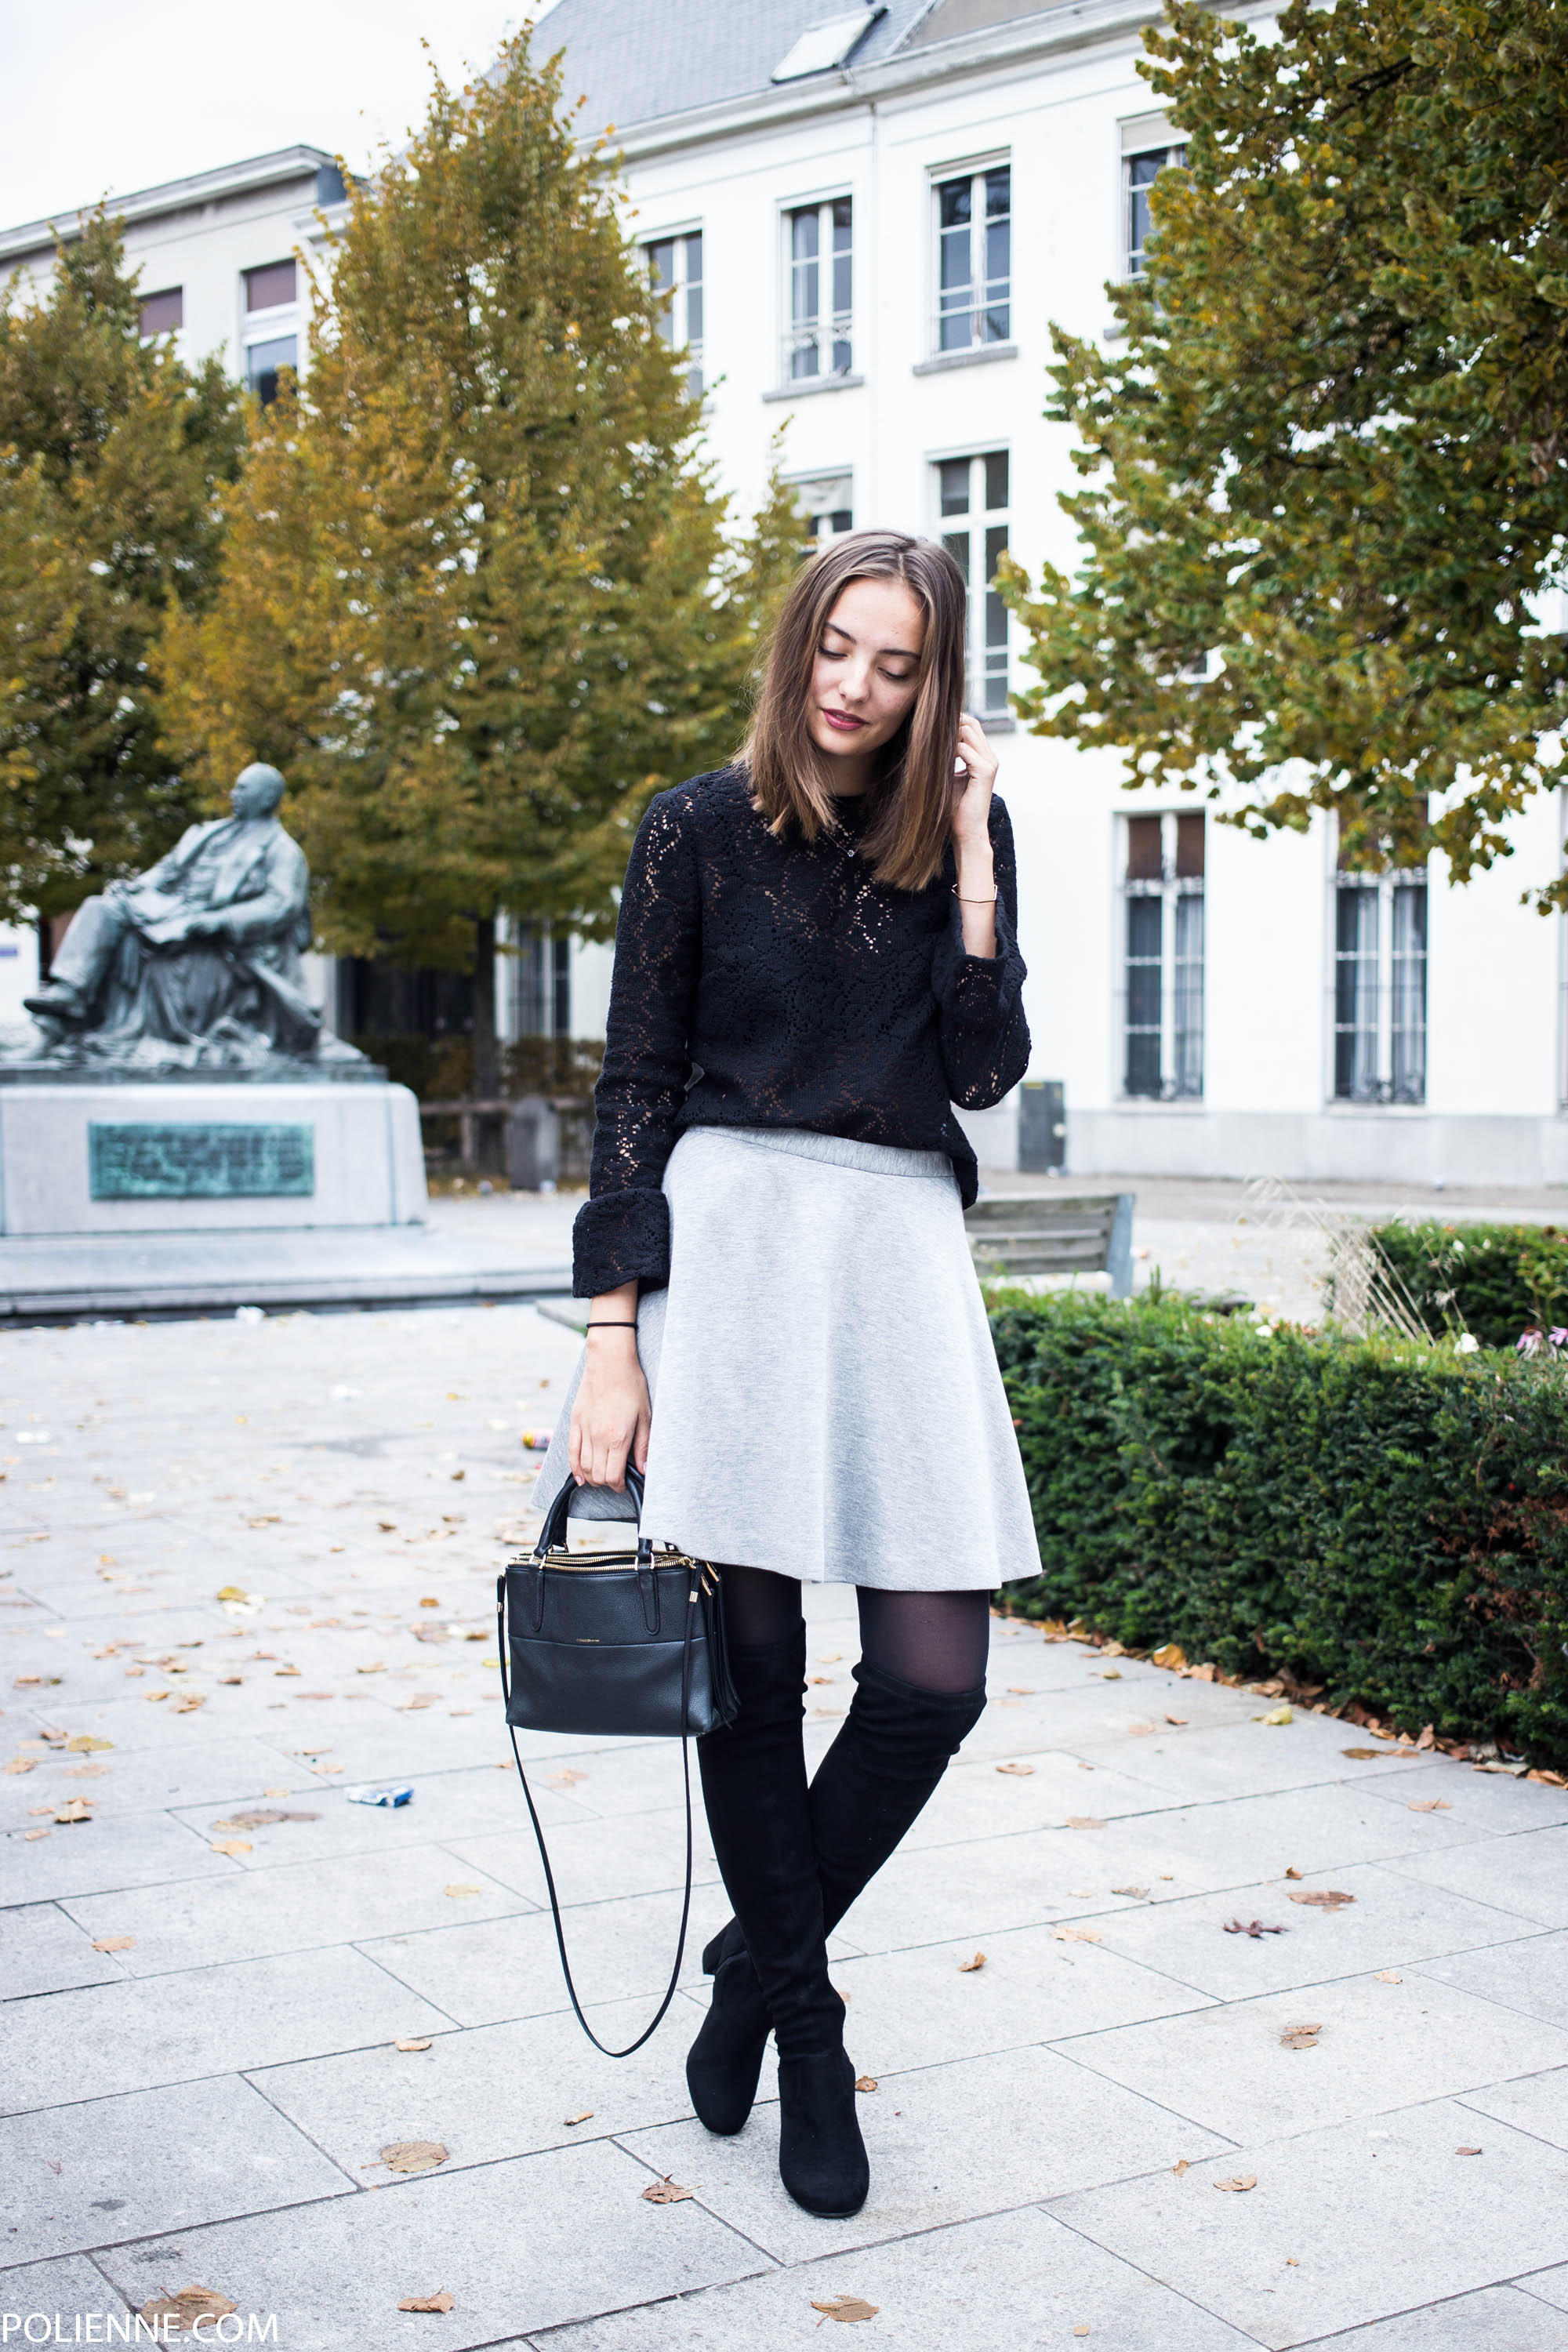 Over the knee boots look great worn with a simple A line skirt like this grey number worn by Rosanna van Billie-Rose. Brands not specified.